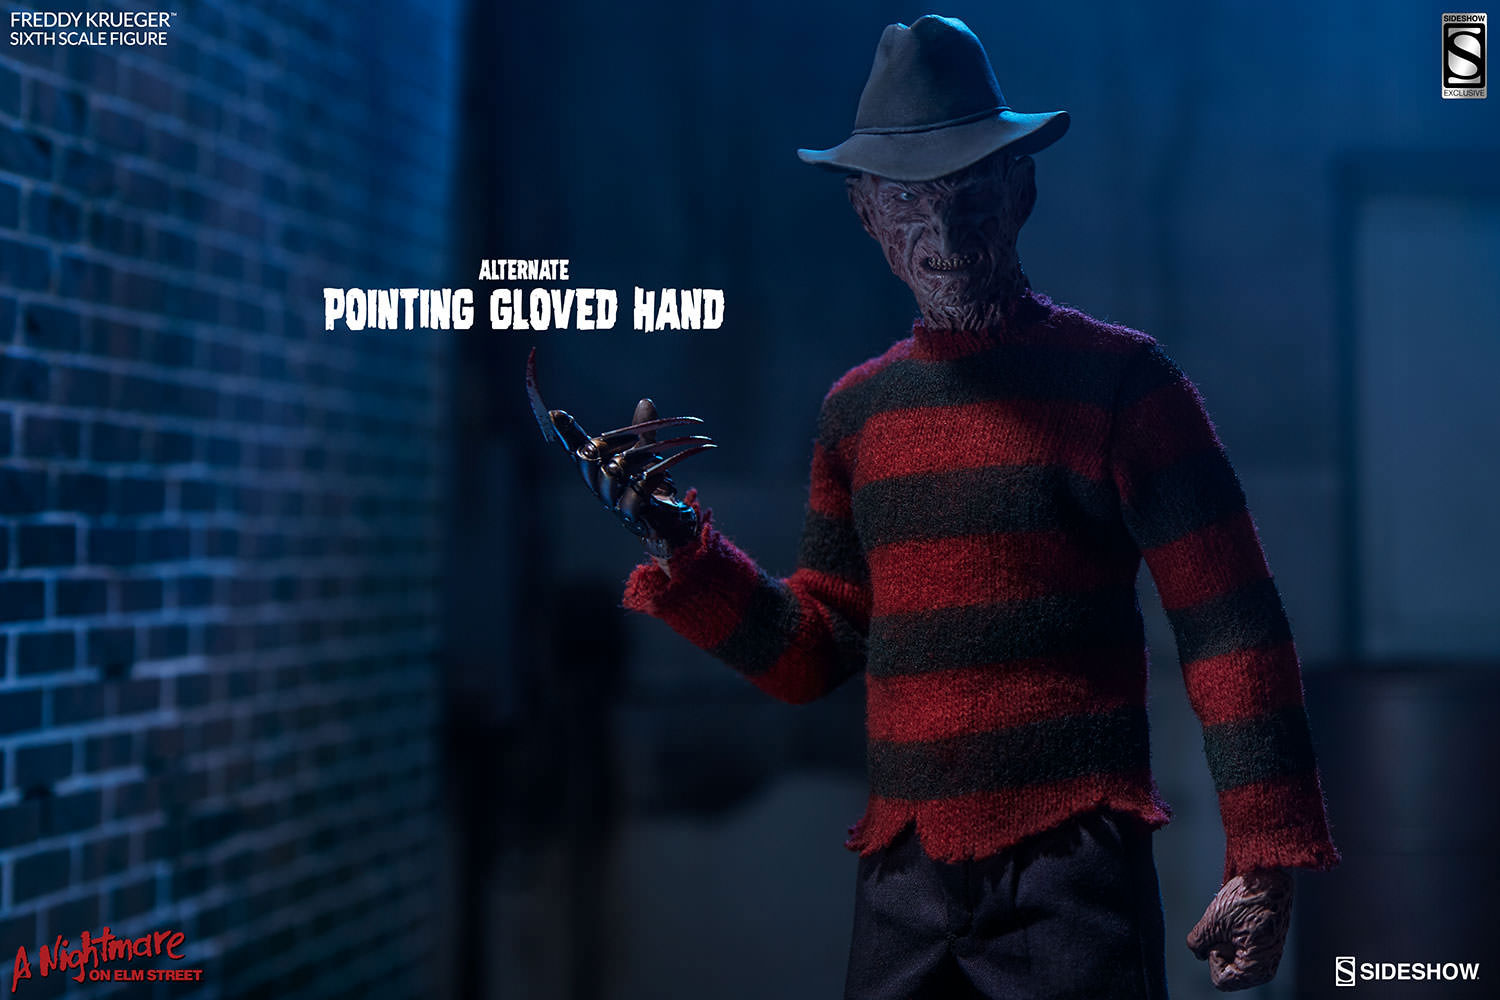 sideshow-nightmare-on-elm-street-freddy-krueger-sixth-scale-fgure-10